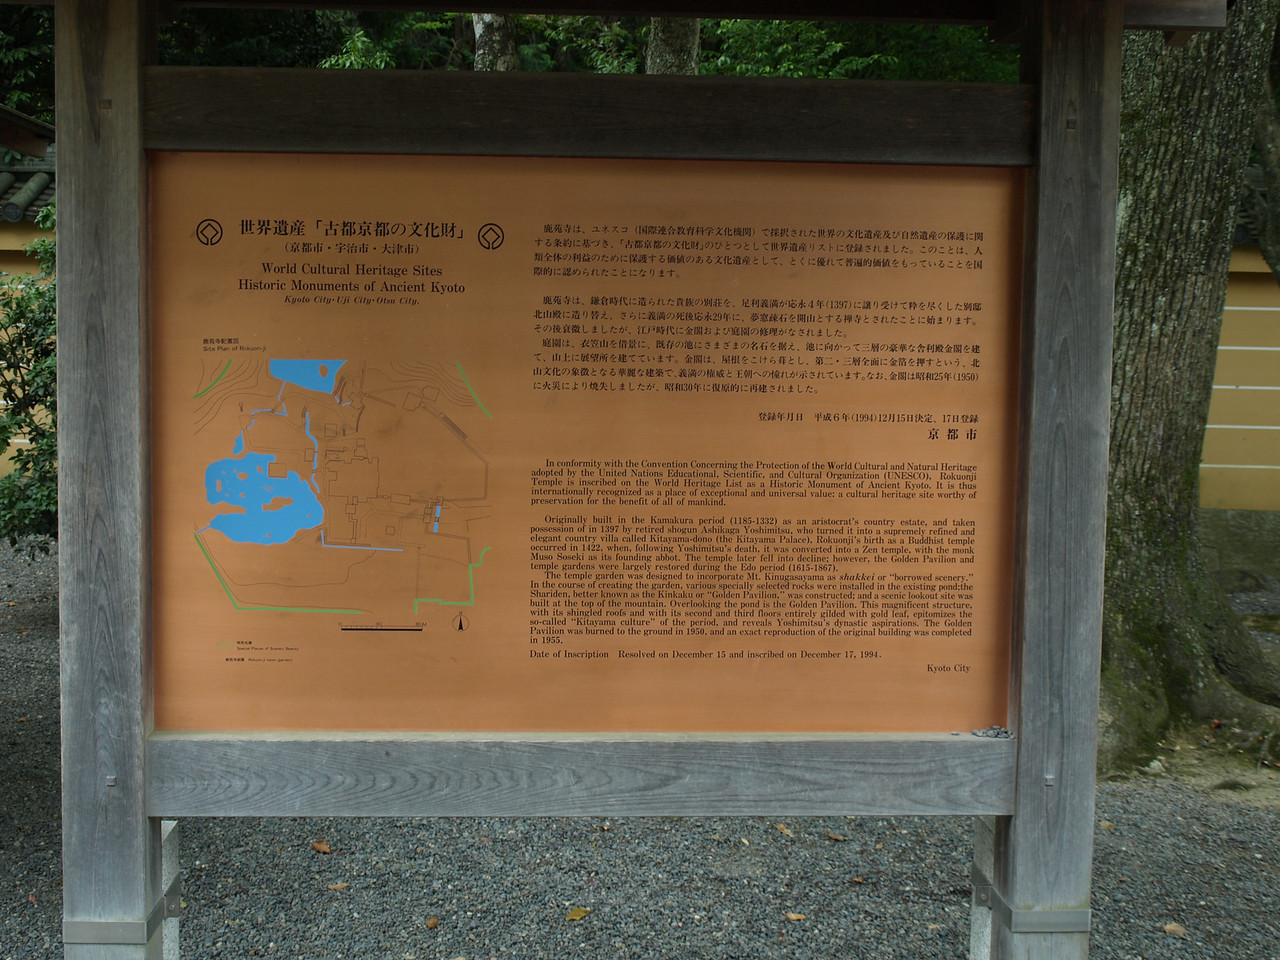 As the sign notes, the original Golden Pavilion was burned to the ground in 1950 and an exact reproduction of the structure was rebuilt in 1955